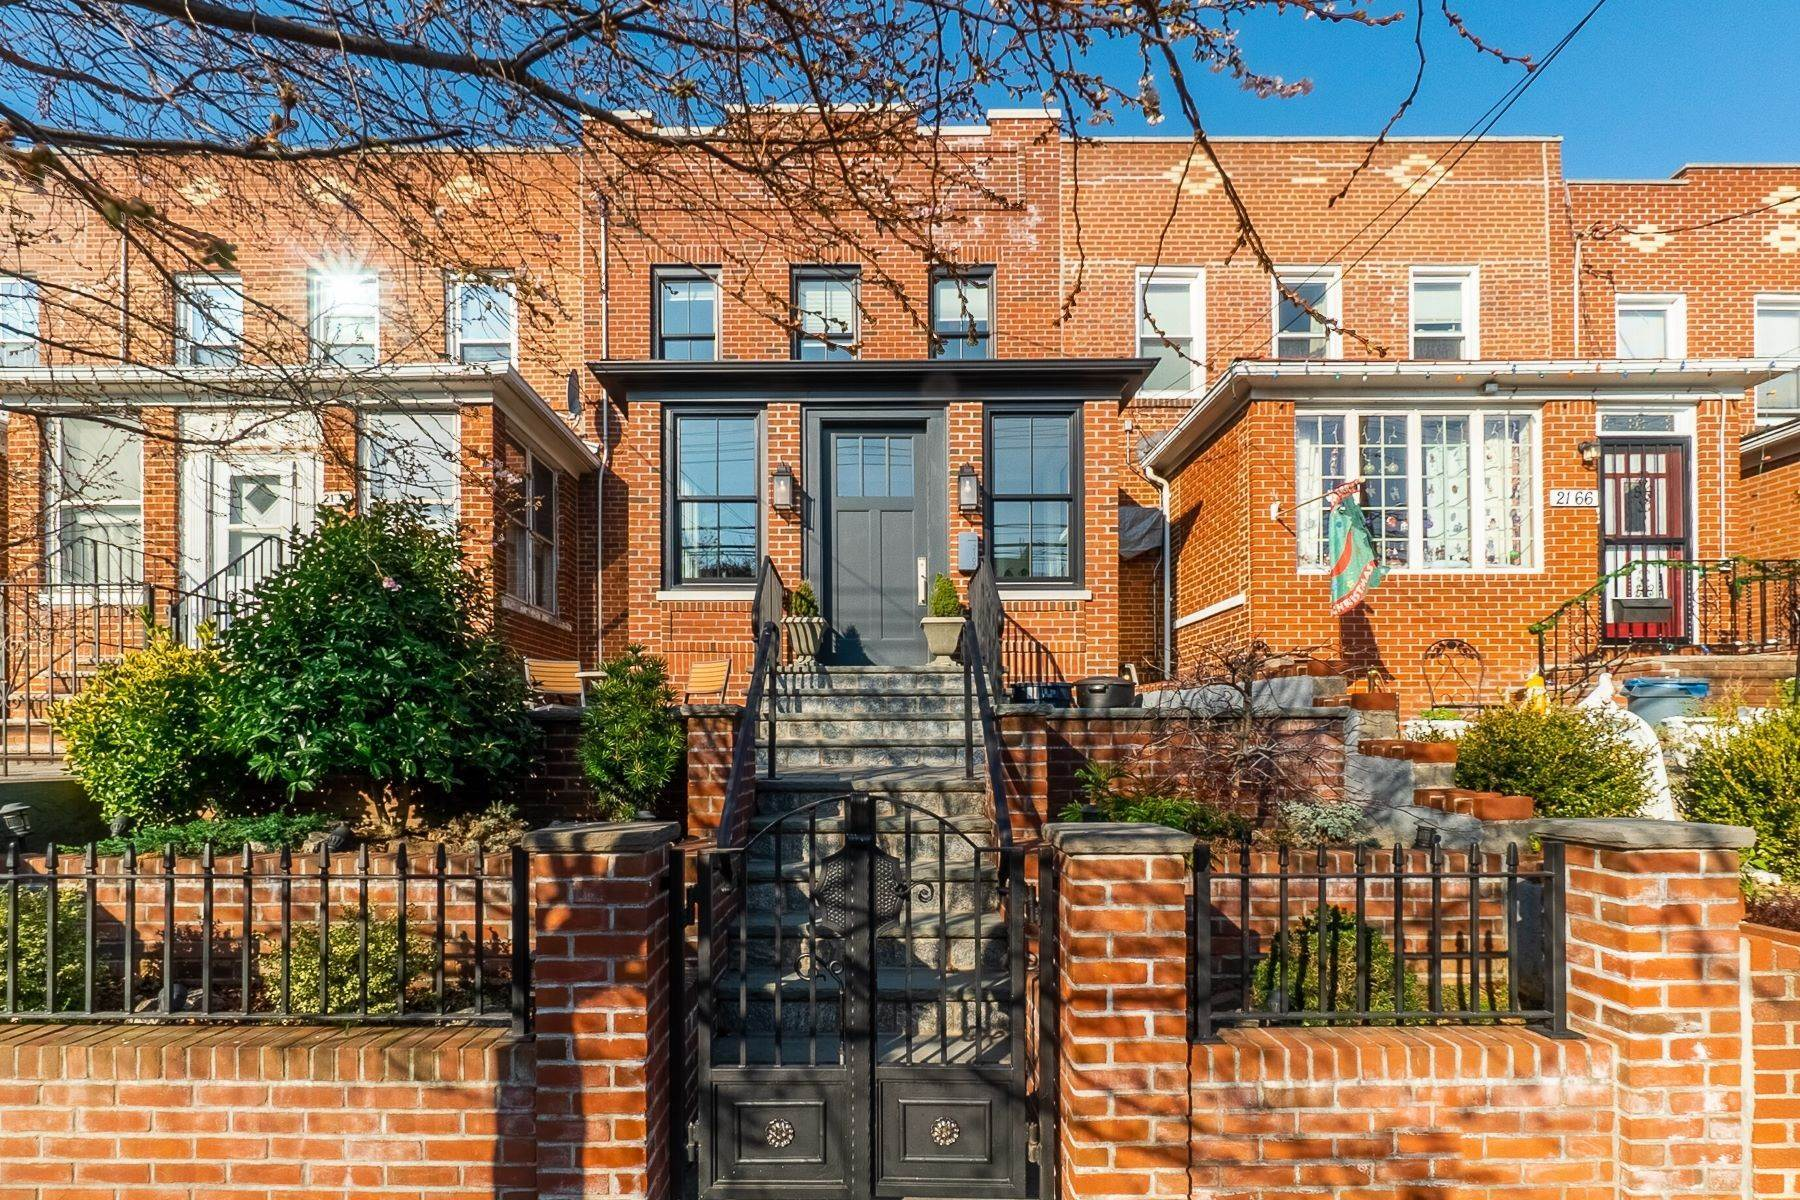 Single Family Homes for Sale at 21-68 38th Street, Astoria, NY 11105 21-68 38th Street Astoria, New York 11105 United States